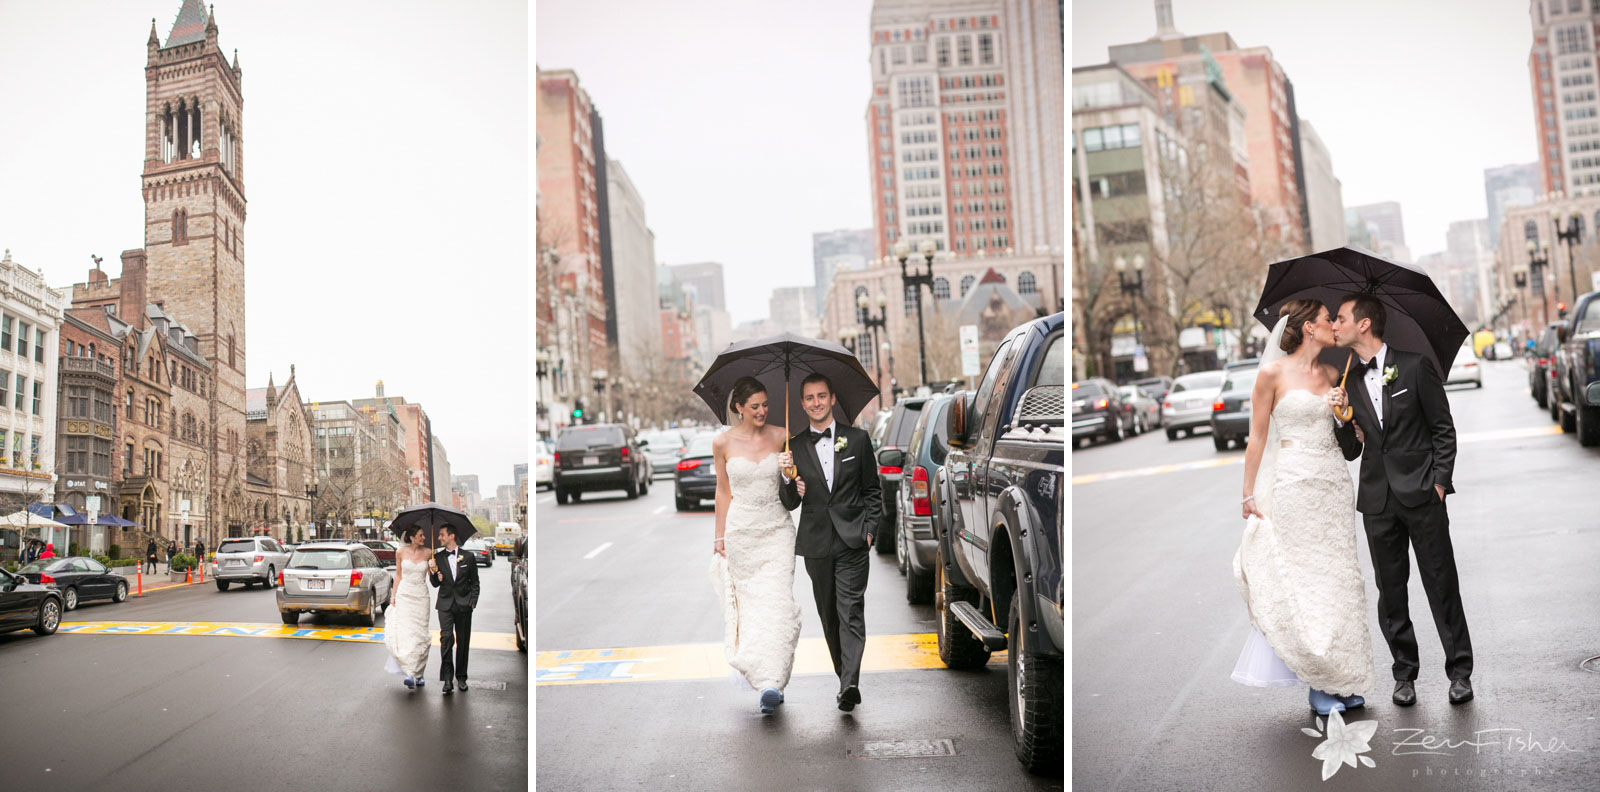 Bride and groom first look walking on Boylston street on a rainy day, kissing under umbrella.